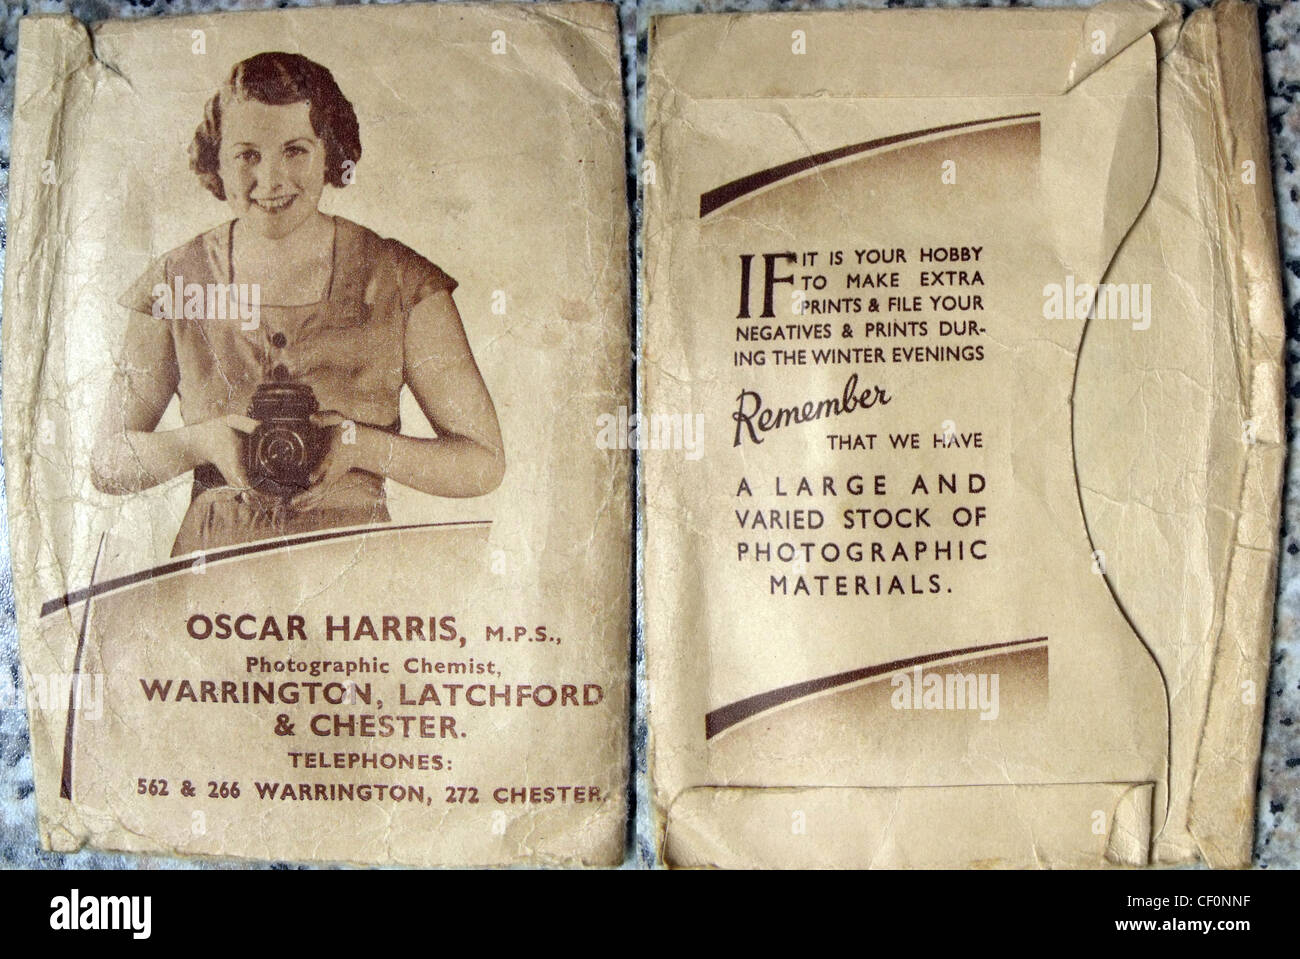 Oscar,Harris,shop,Latchford,Warrington,Cheshire,England,UK,gotonysmith,brown,film,processing,monochrome,roll,brownie,lab,chemists,chemist,shop,Latchford,Chester,old,way,style,woman,lady,holding,6x6,camera,box,if,it,is,your,hobby,to,make,extra,prints,print,negatives,negative,during,winter,evenings,large,stock,of,photographic,materials,gotonysmith,Buy Pictures of,Buy Images Of